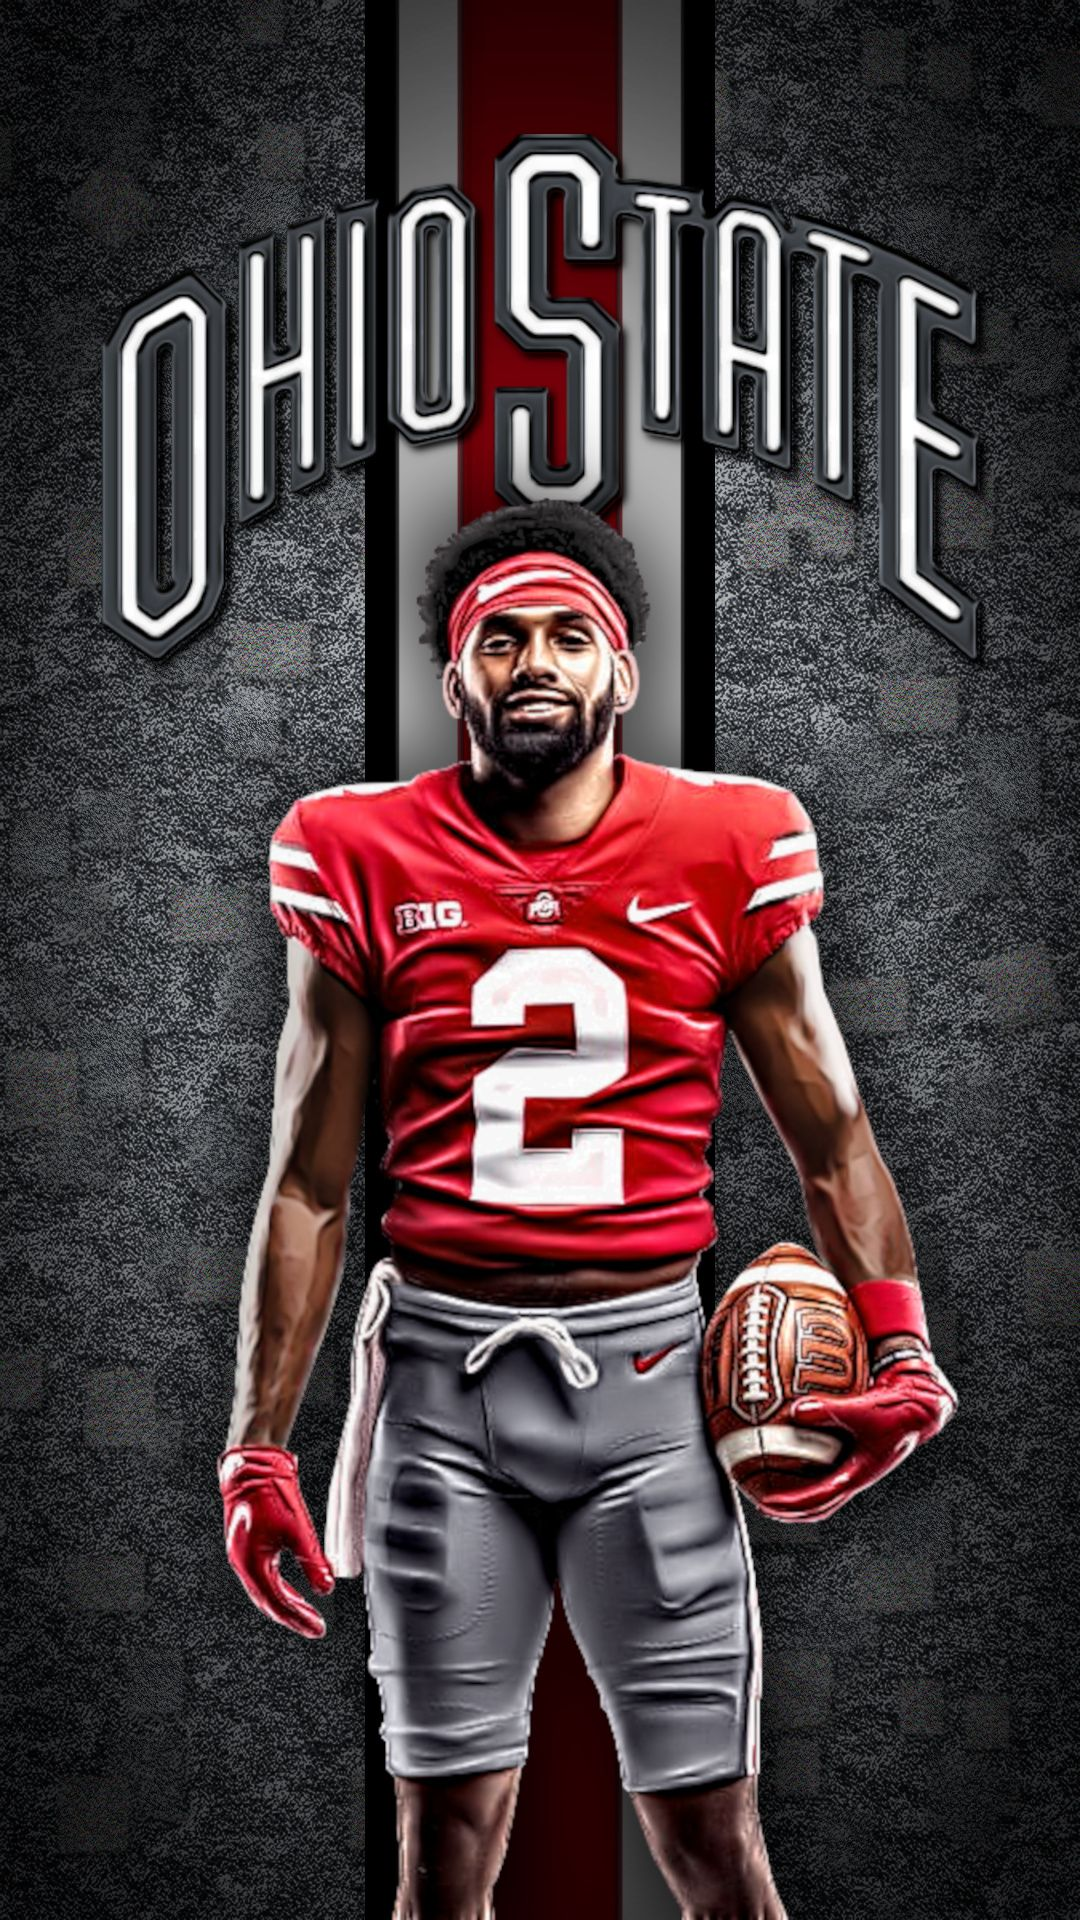 Buckeye Chris Olave Lock Screen 634 D 2 For Iphone 6 7 8 Samsung Galaxy S10 Add It To You Re In 2021 Ohio Football Ohio State Buckeyes Football Ohio State Football